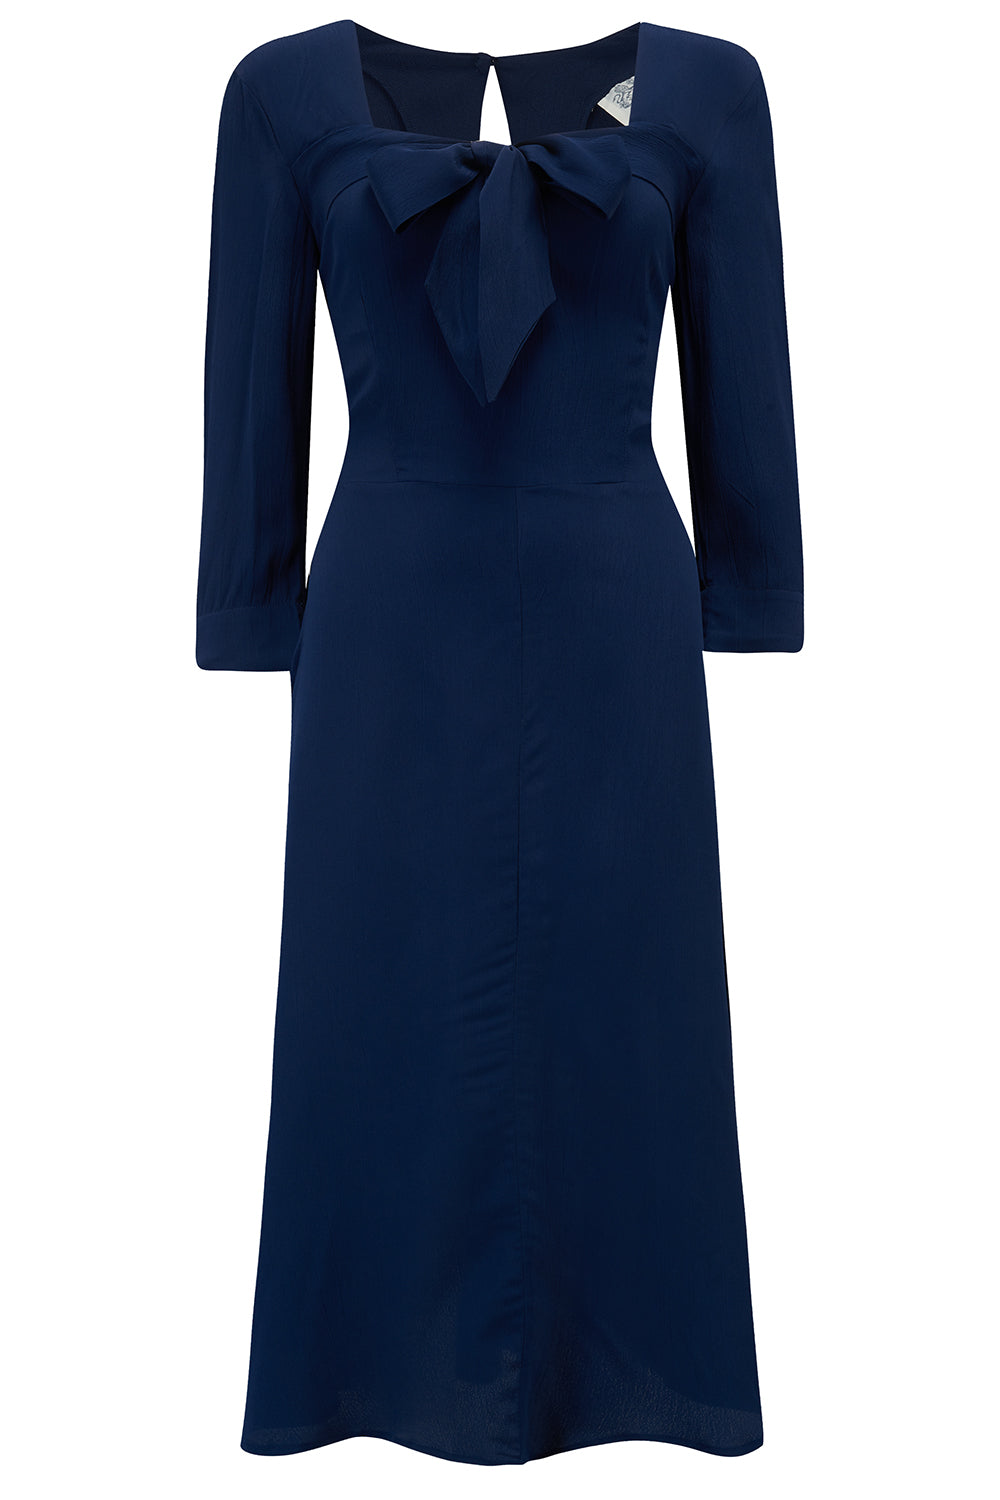 1940s Dress Styles Joyce 1940s Day Dress in Navy Blue Authentic true vintage style £79.00 AT vintagedancer.com